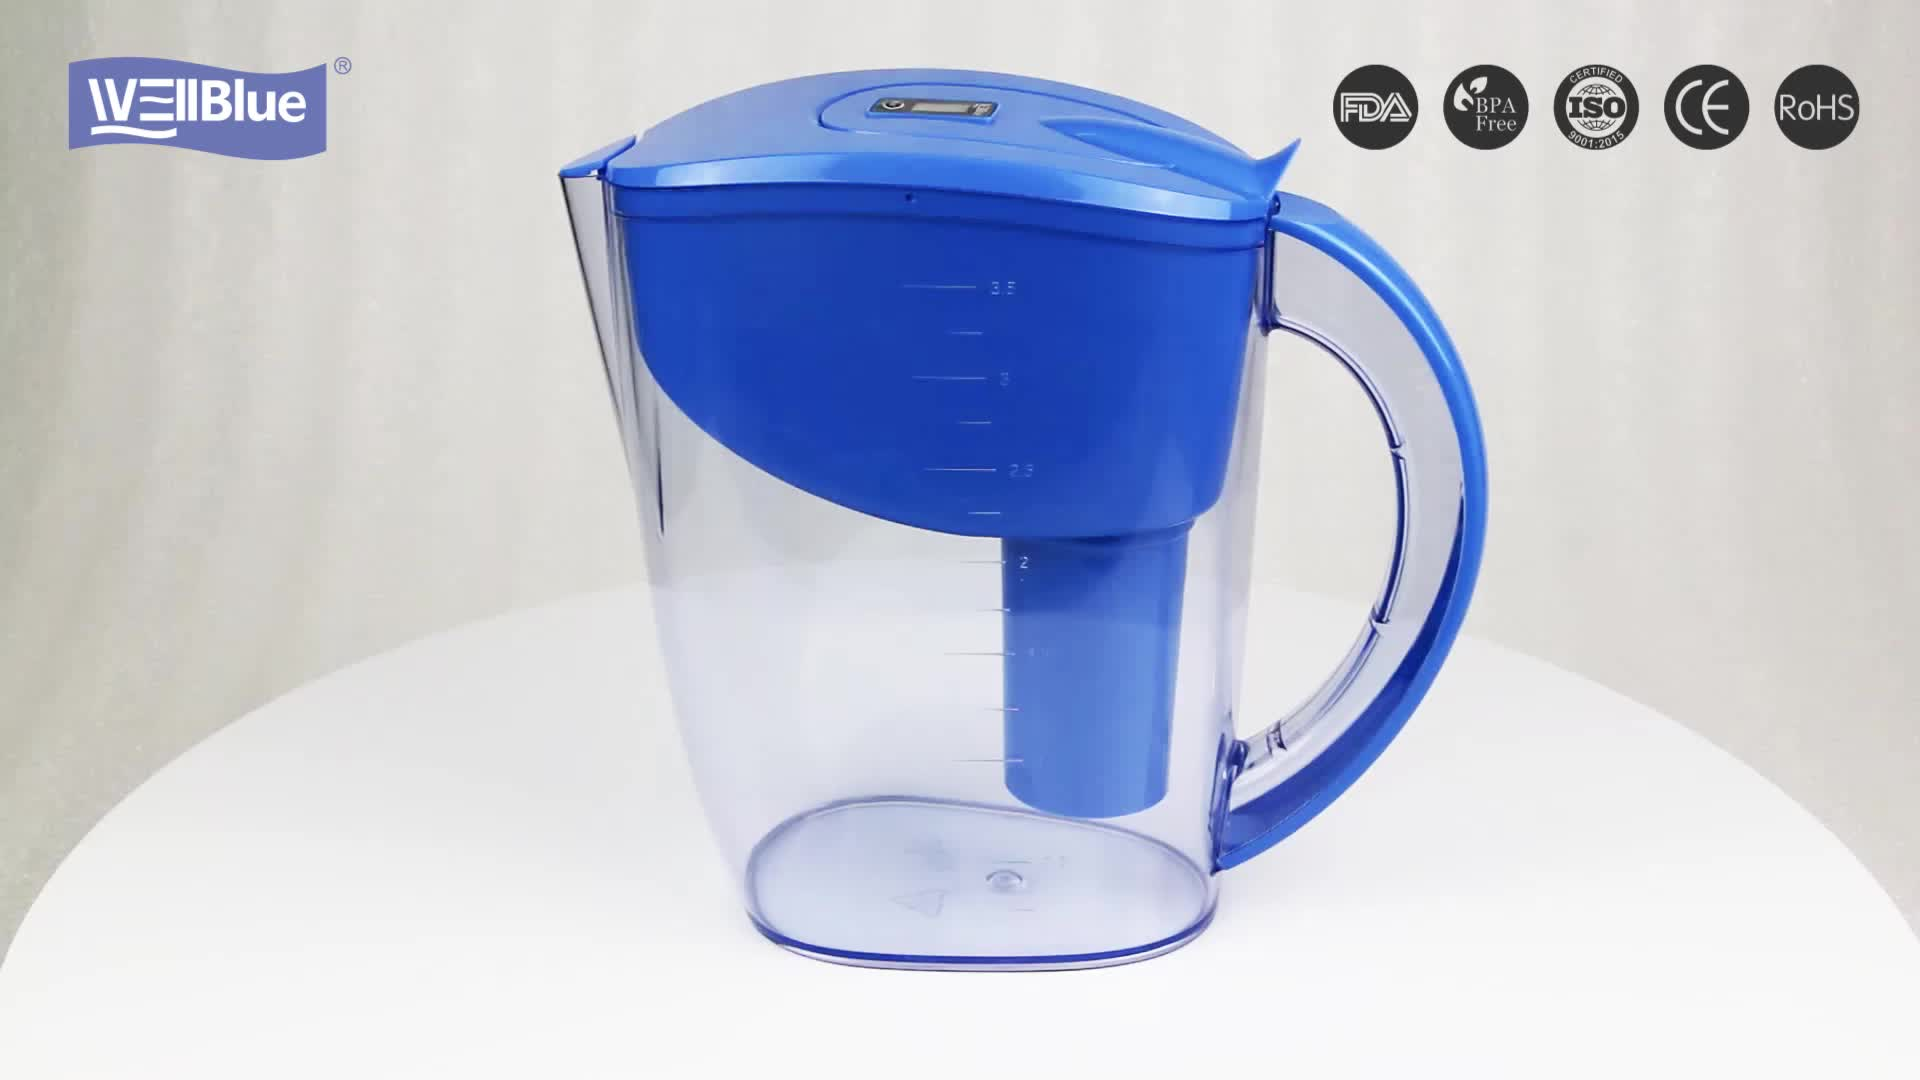 Wellblue 3.5L BPA free plastic alkaline water pitcher filter systems with alkaline filter